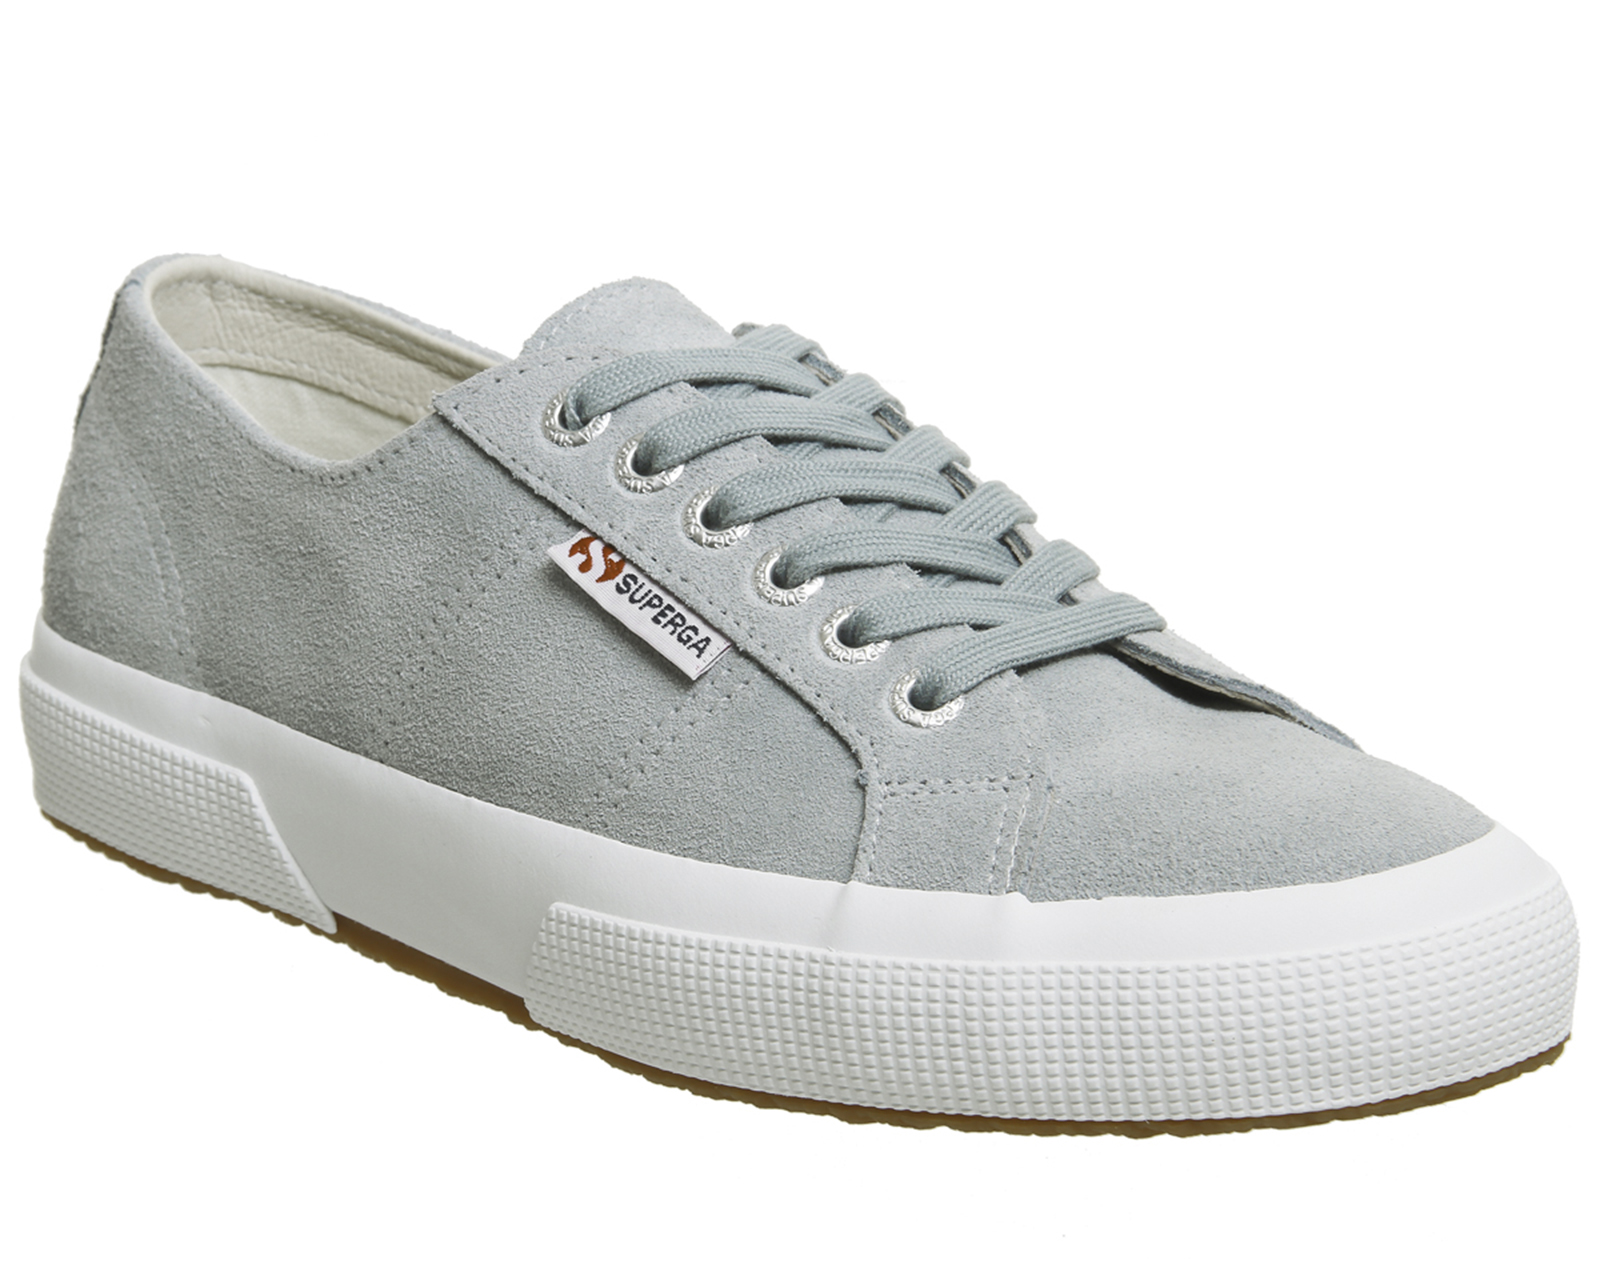 424ea17041b Sentinel Womens Superga 2750 Trainers Light Grey Suede Trainers Shoes